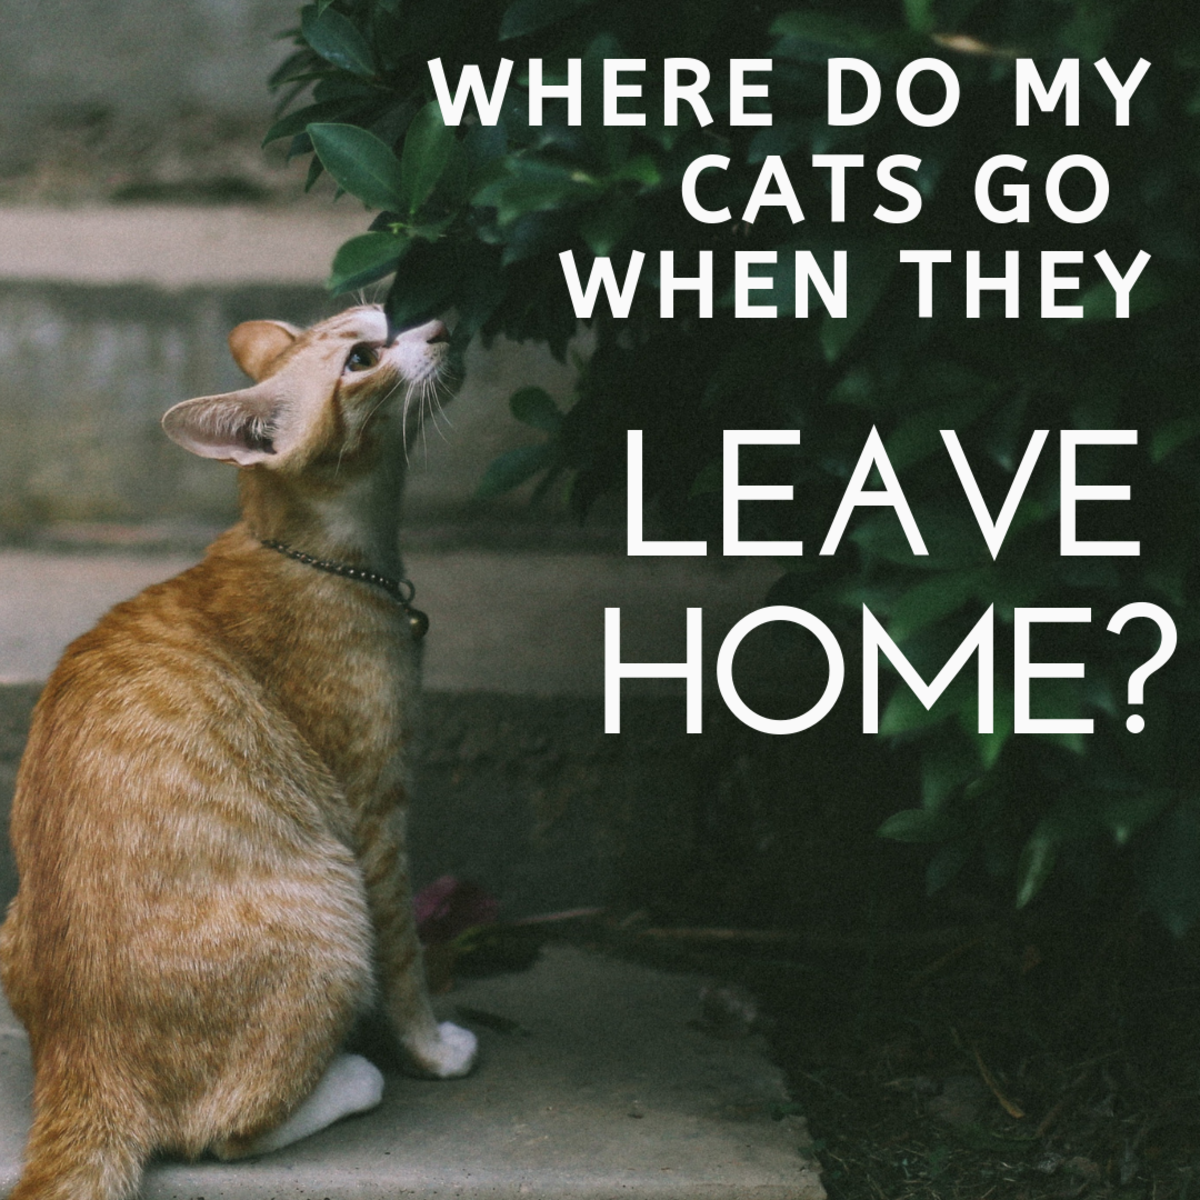 Where Do Your Cats Go When They Leave Your Home?